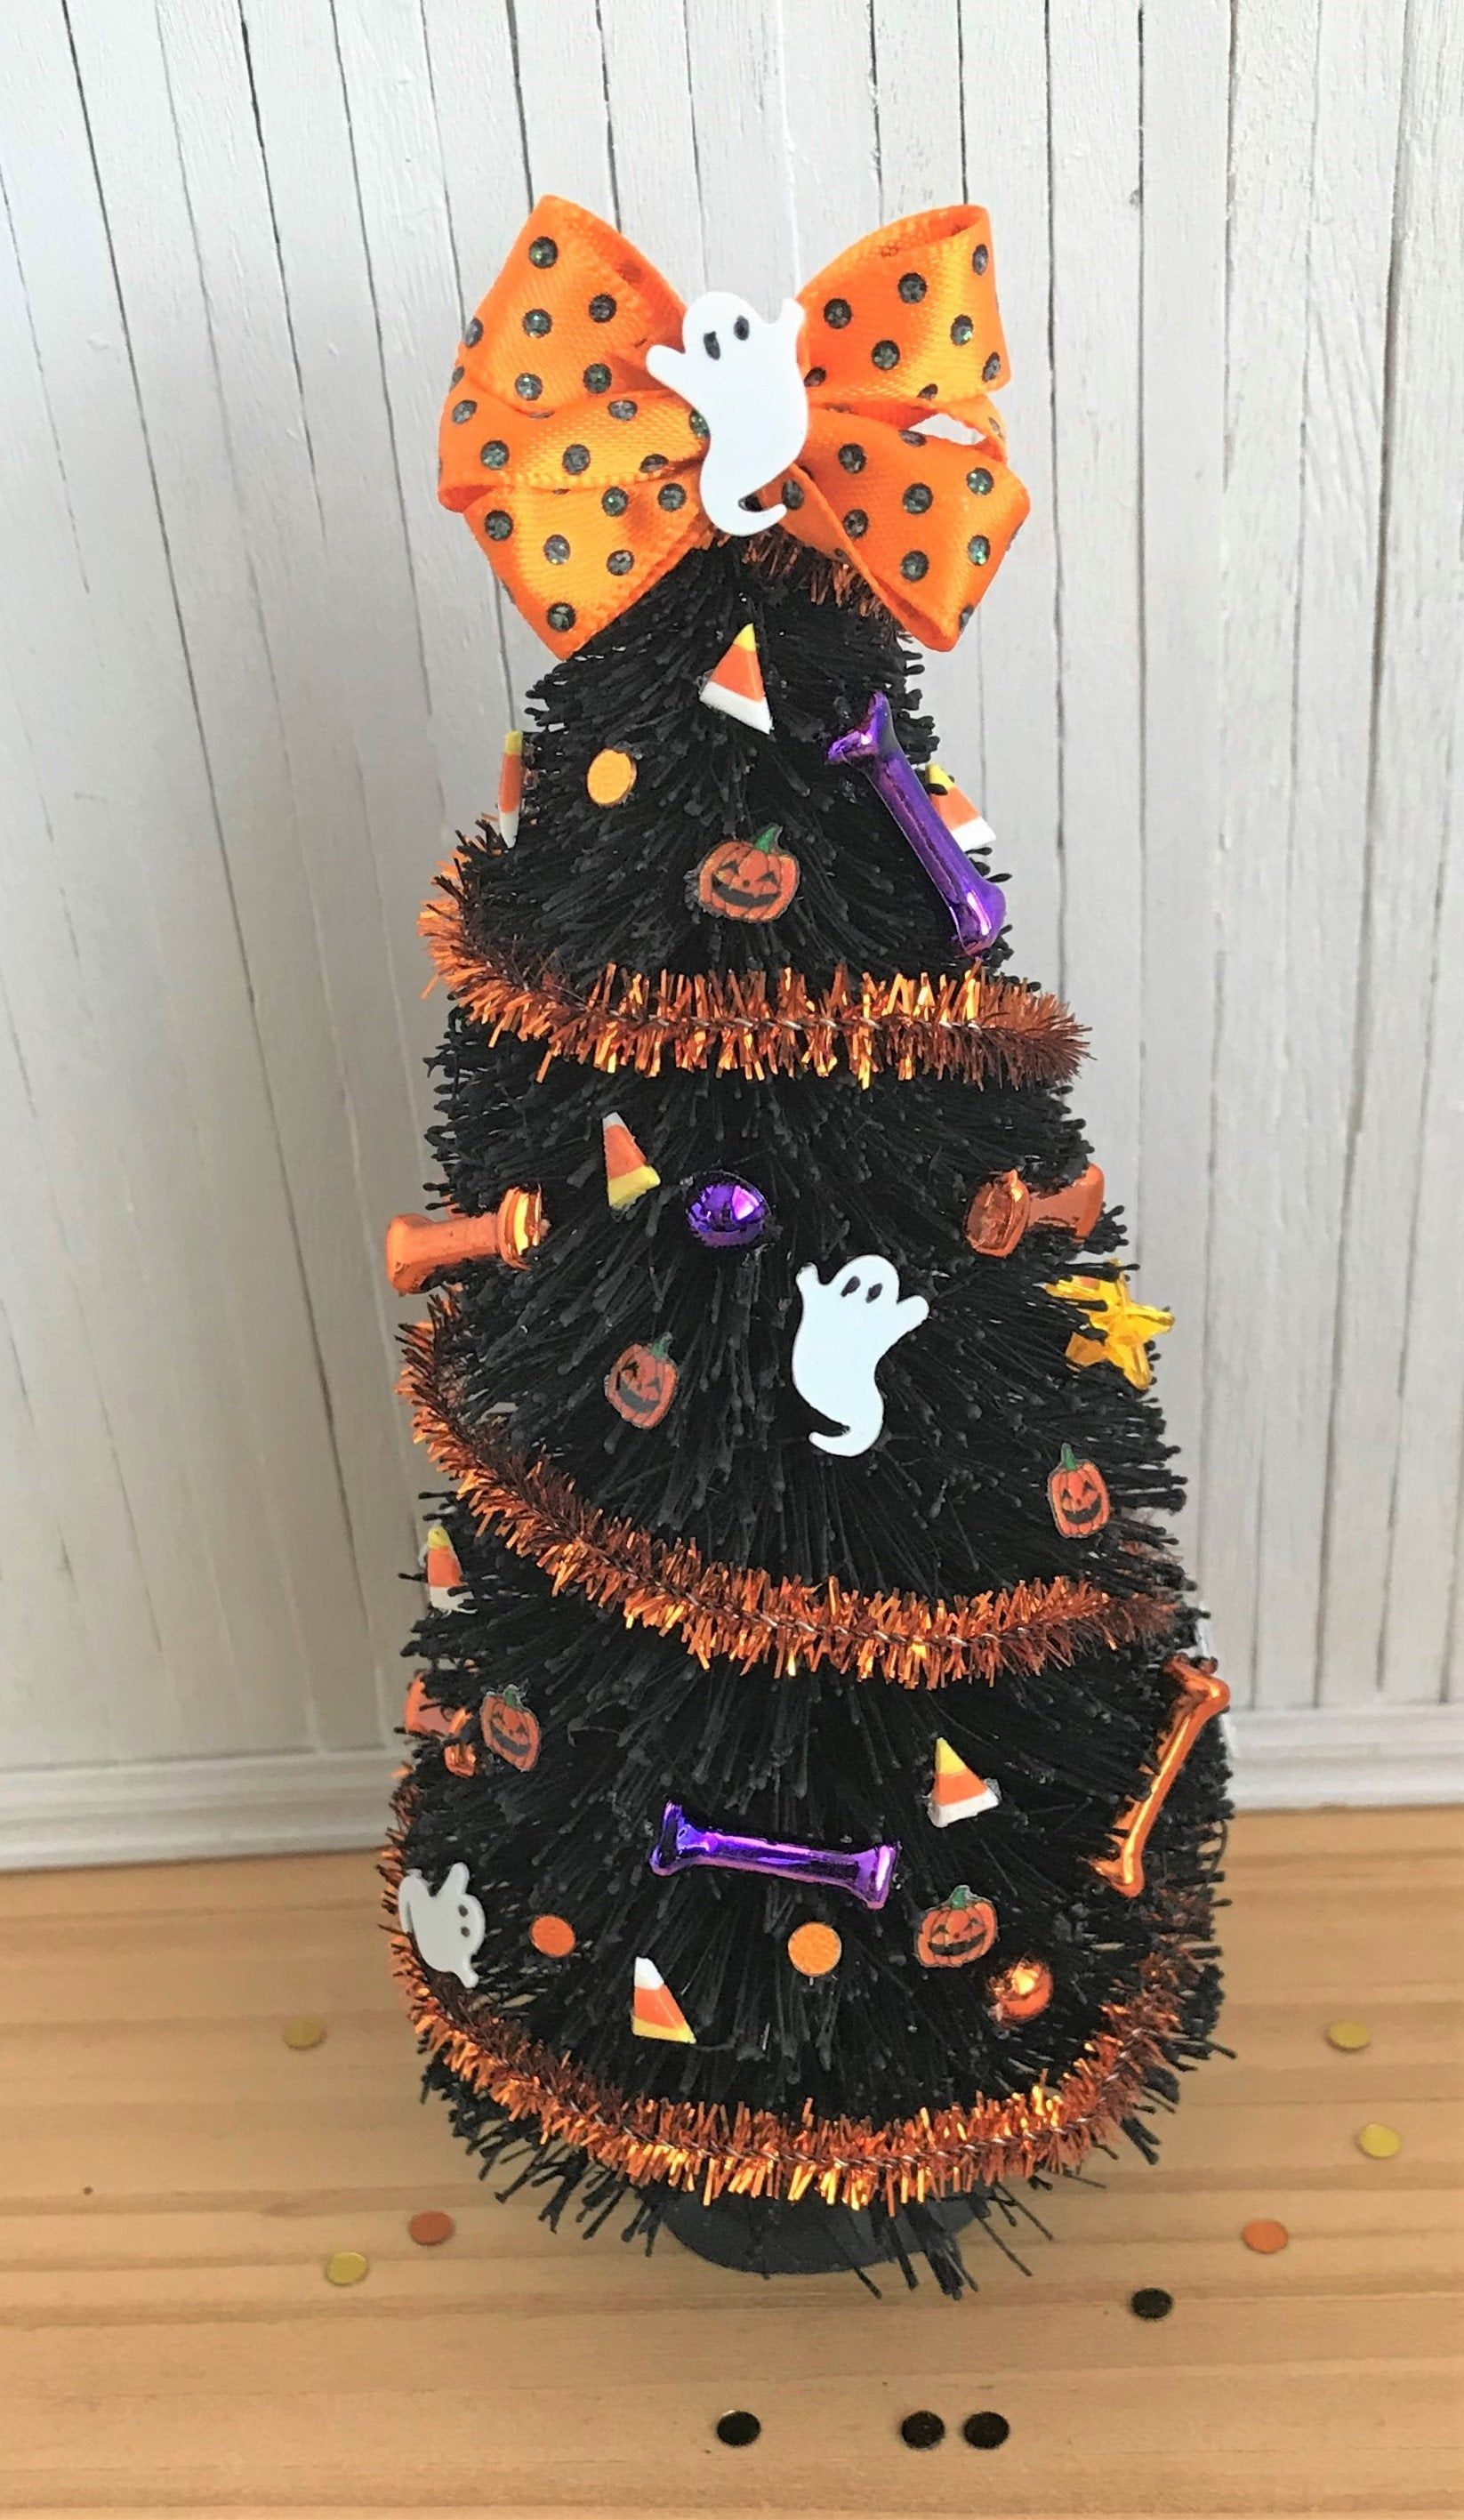 Miniature Halloween Tree, Decorated With Orange Tinsel and